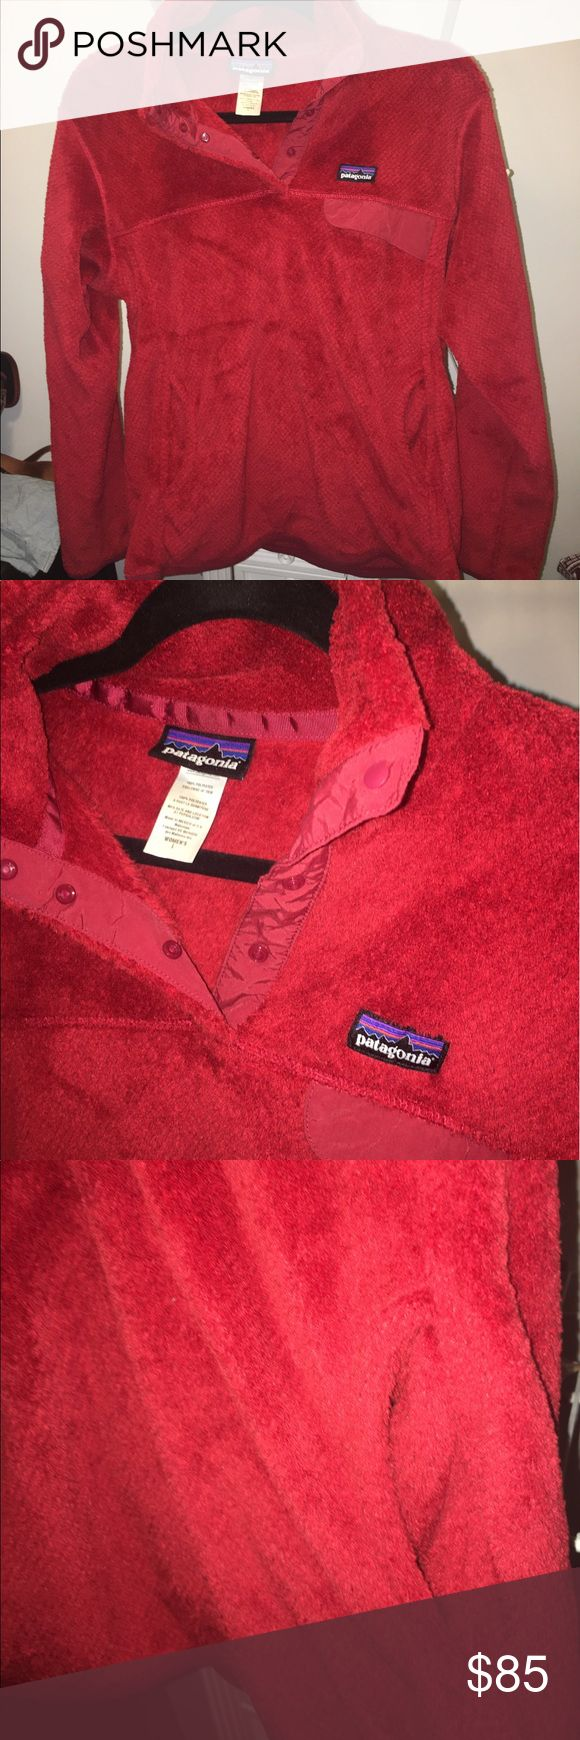 Womens Patagonia Jacket with Kangaroo Pouch red fleece jacket only worn a couple times!!! Patagonia Jackets & Coats